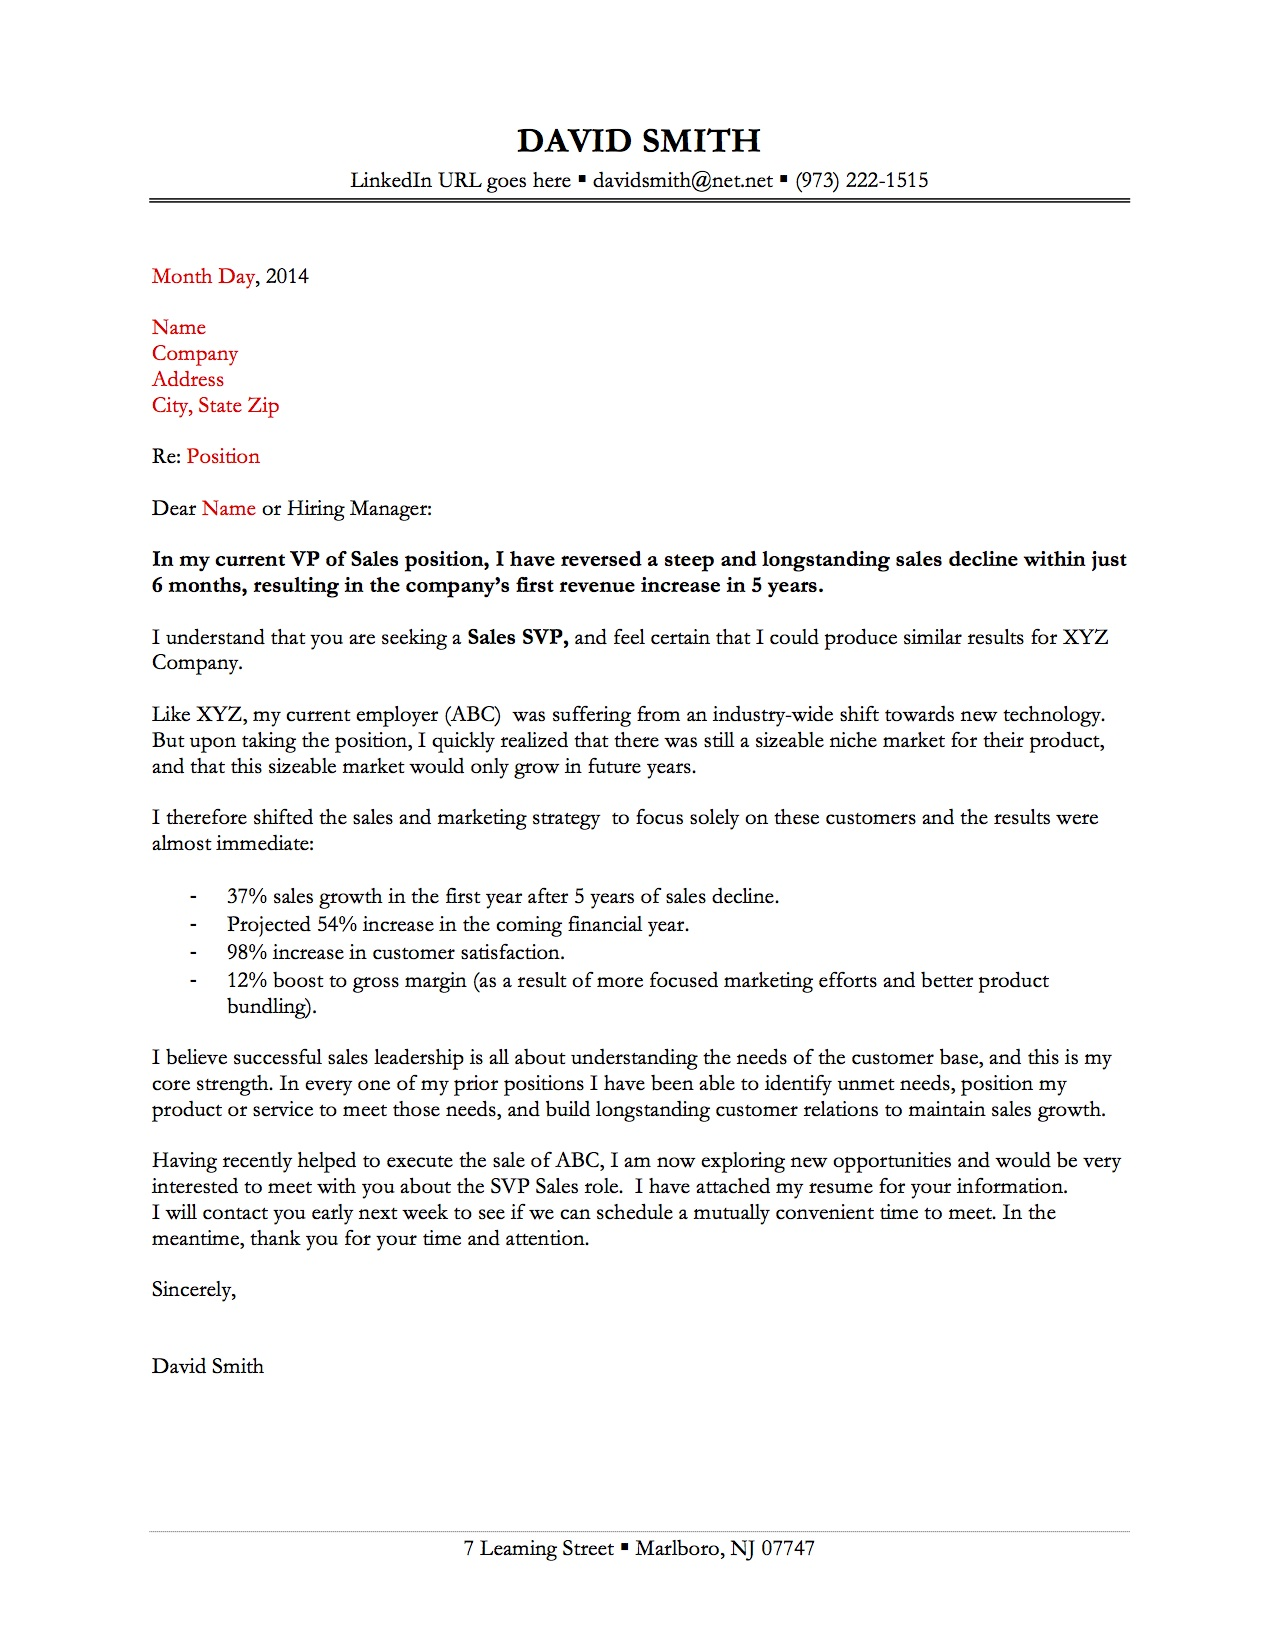 great cover letter - Best Cover Letter Sample 2